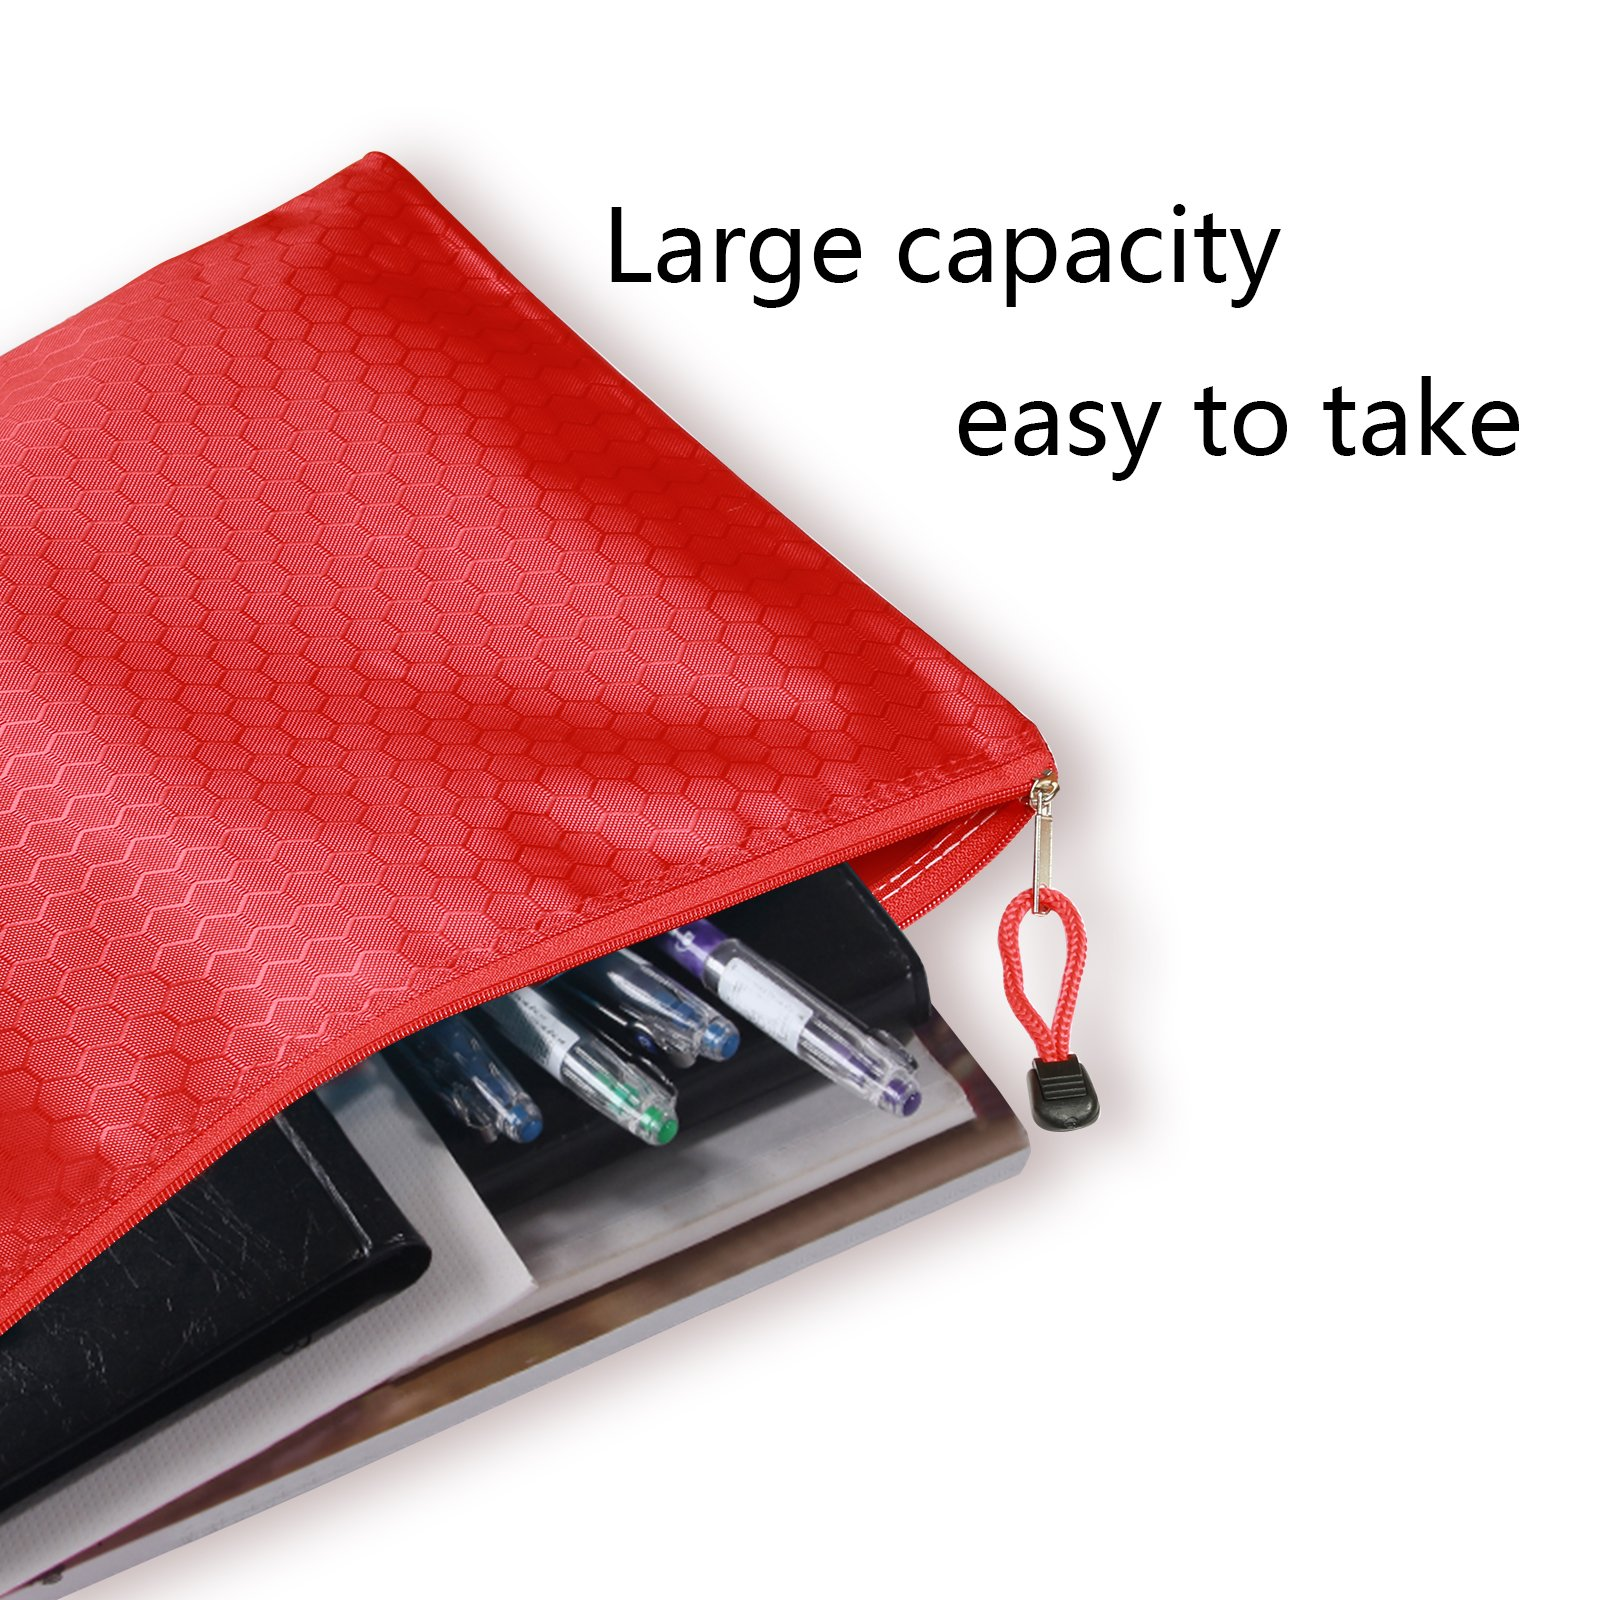 MEZOOM 5 Pcs A4 File Bags Document Pocket Holder Storage Organizer Waterproof Pouch Zipper Files Category Bag for Cosmetics Offices StationeryMEZOOM 5 Pcs A4 File Bags Document Pocket Holder Water